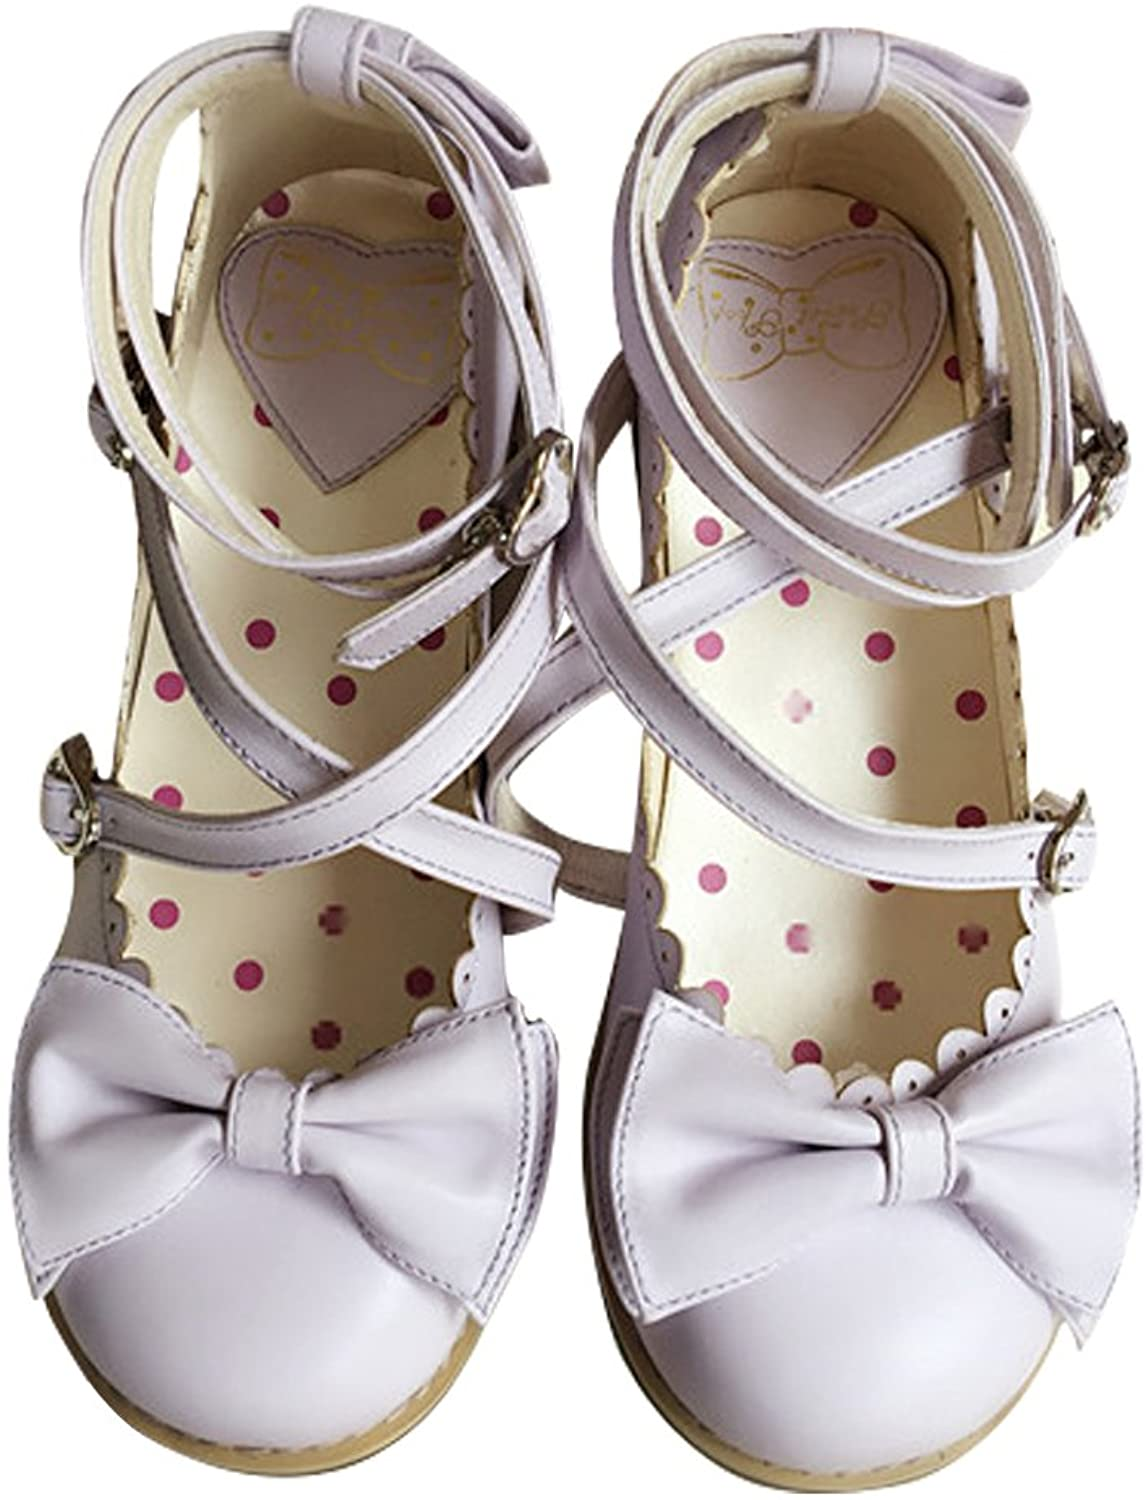 Japanese Sweet Lolita Low Chunky Heels Round Toe Bowtie Strappy Princess shoes